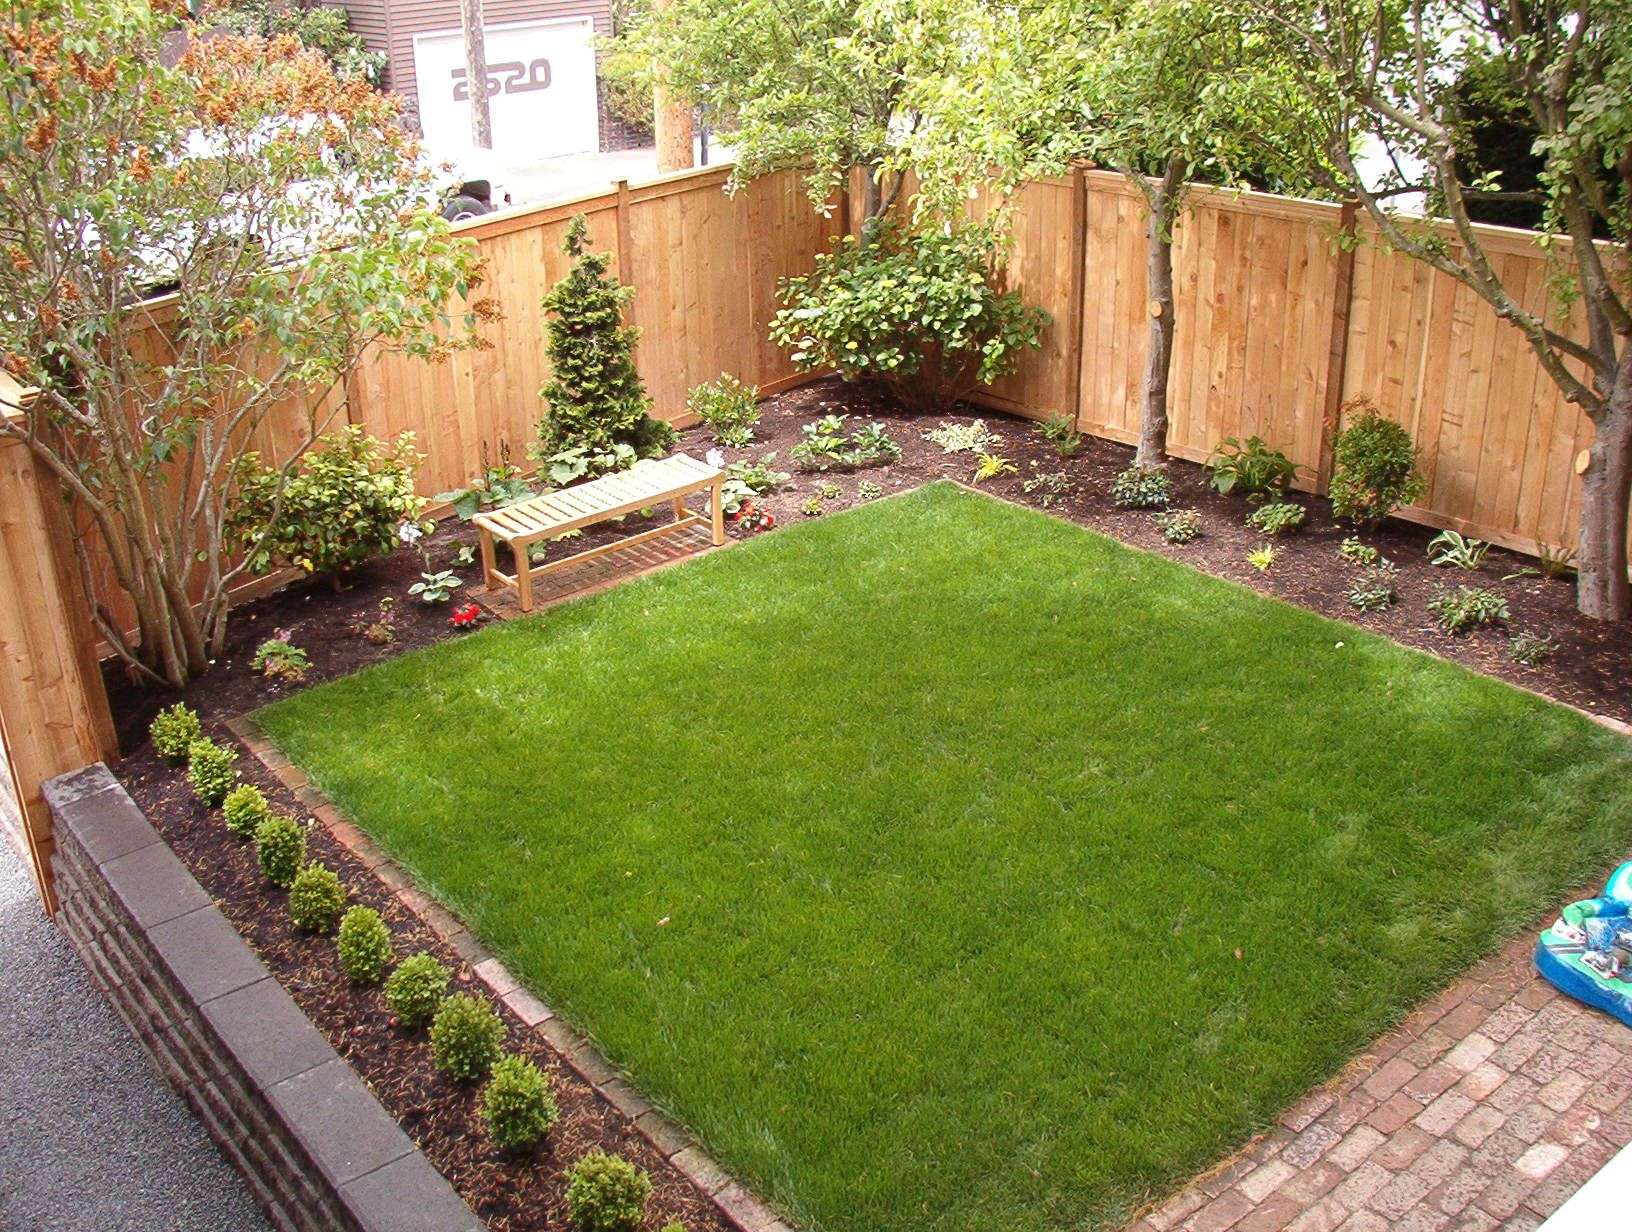 Sod lawn for children to play on landscape ideas for Small front yard ideas with fence